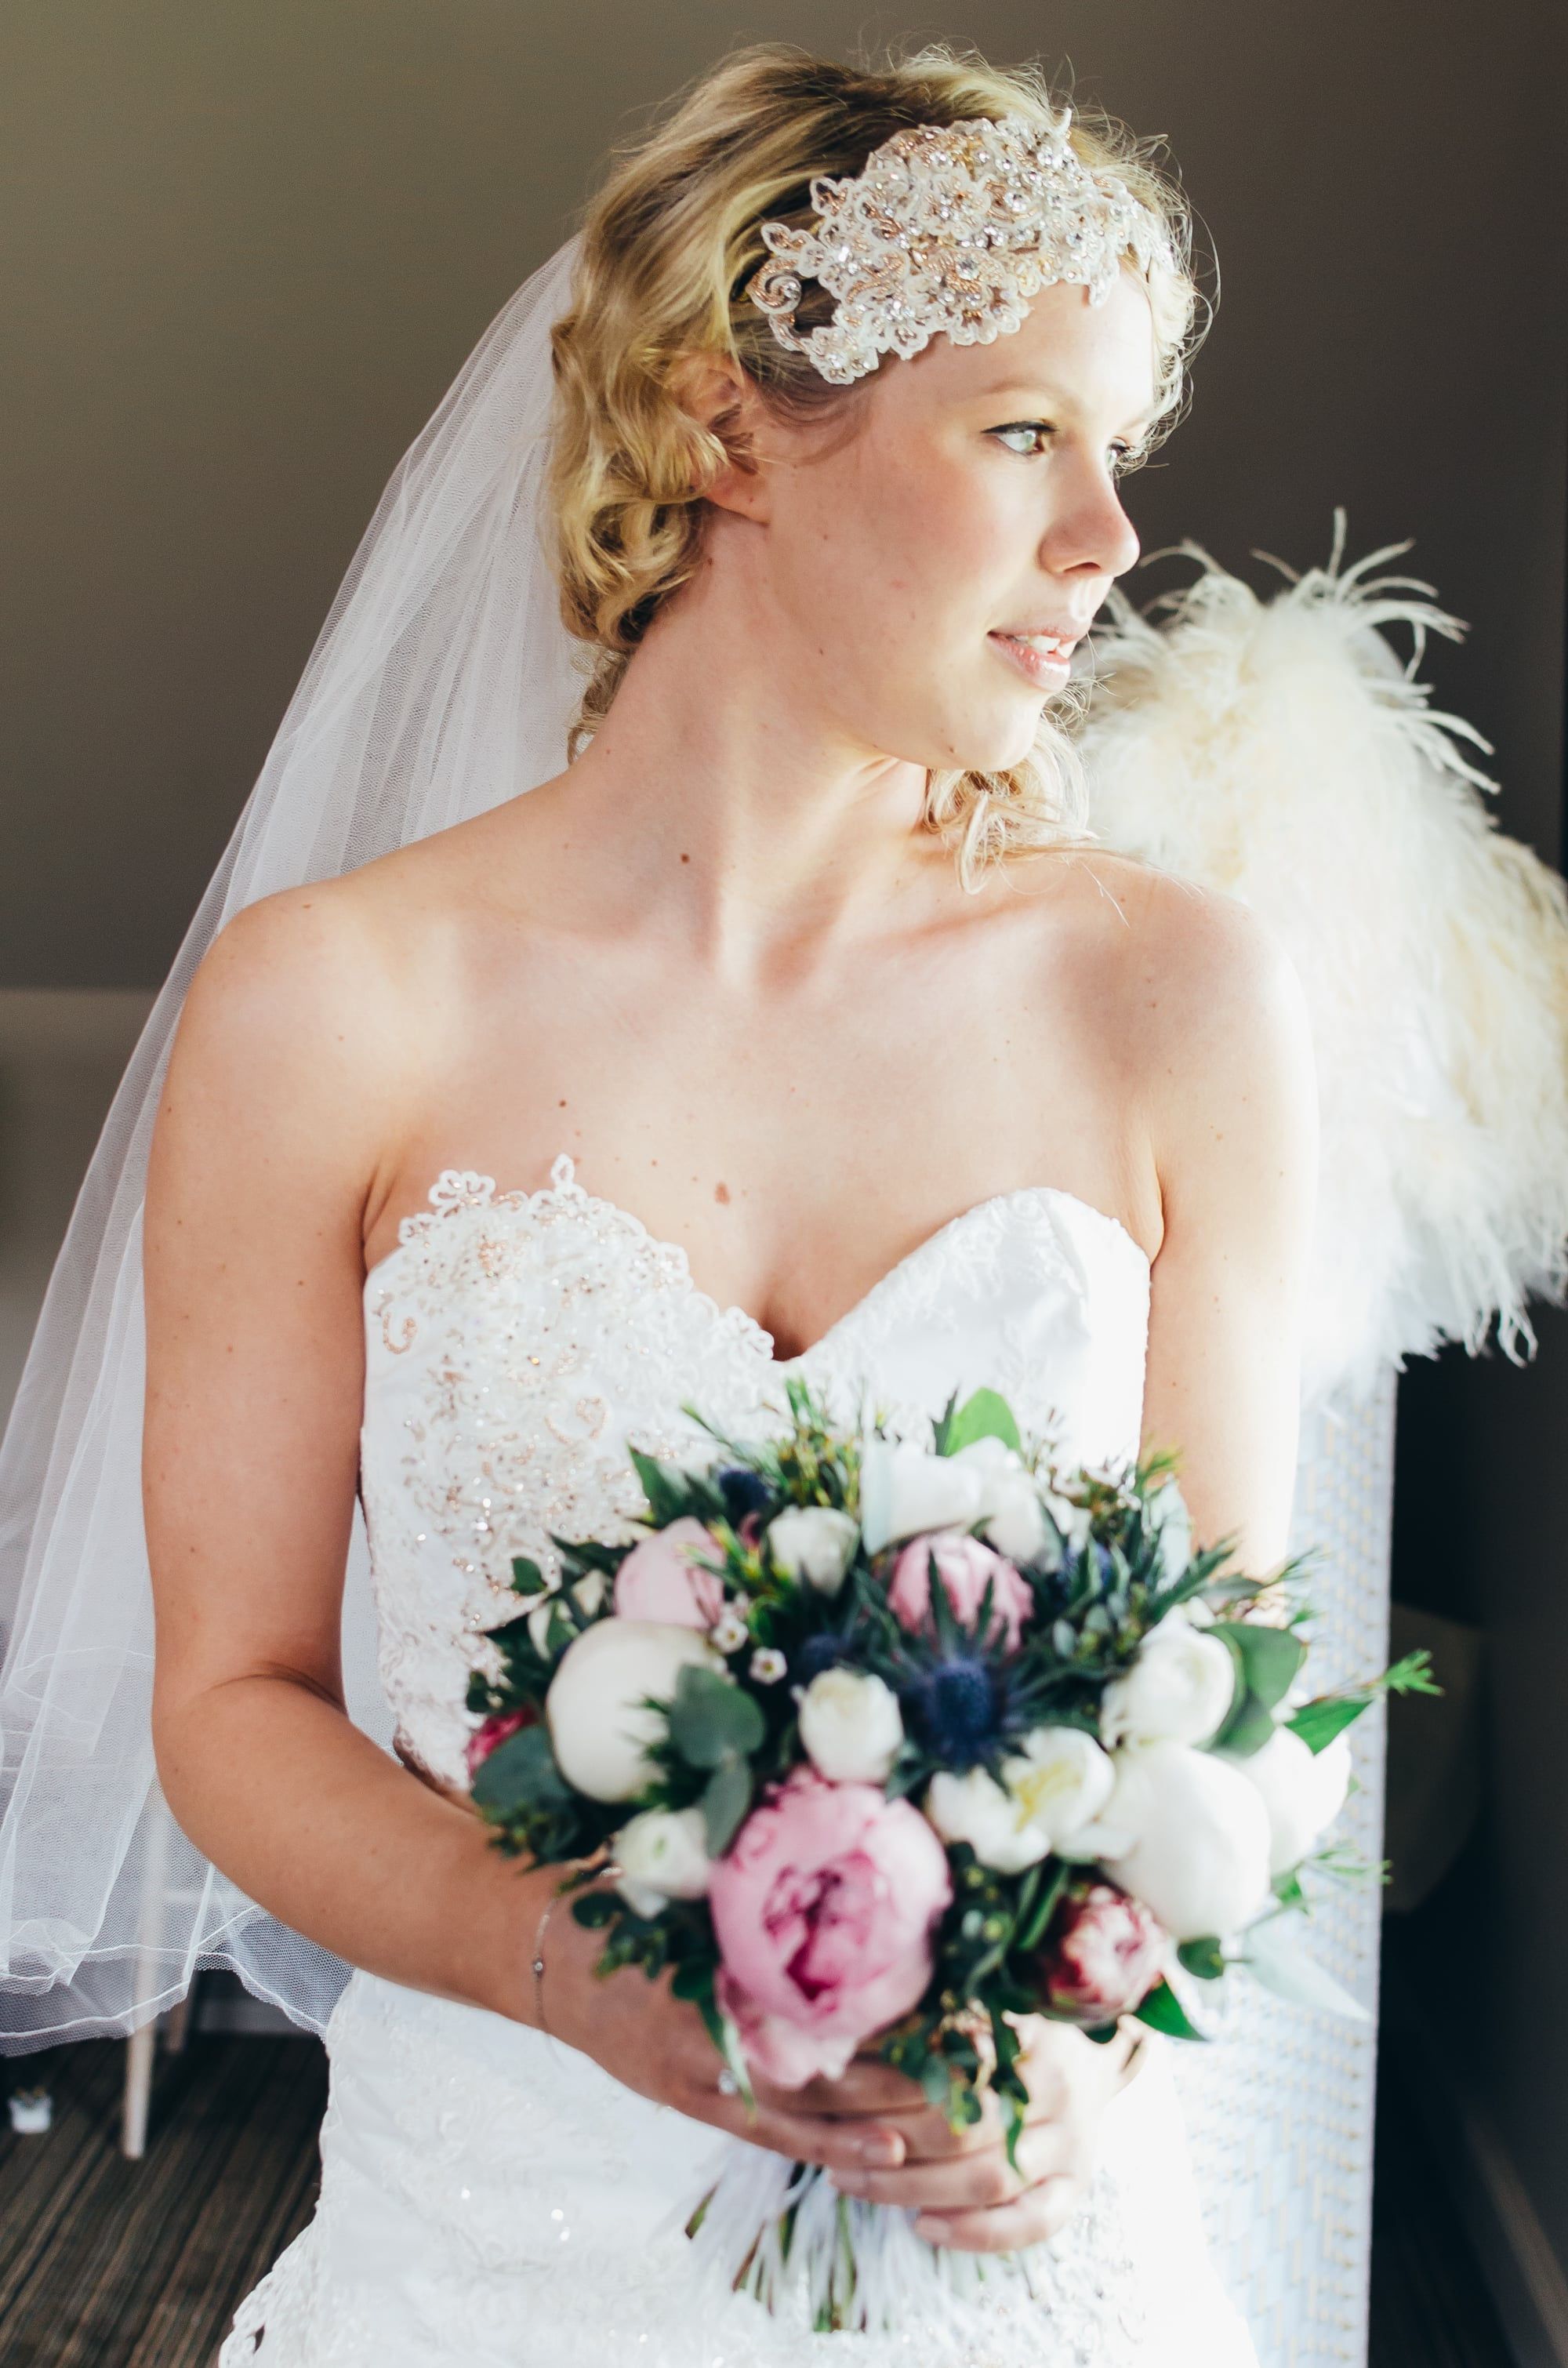 Photo by Wedding Photography by Nigel Edgecombe